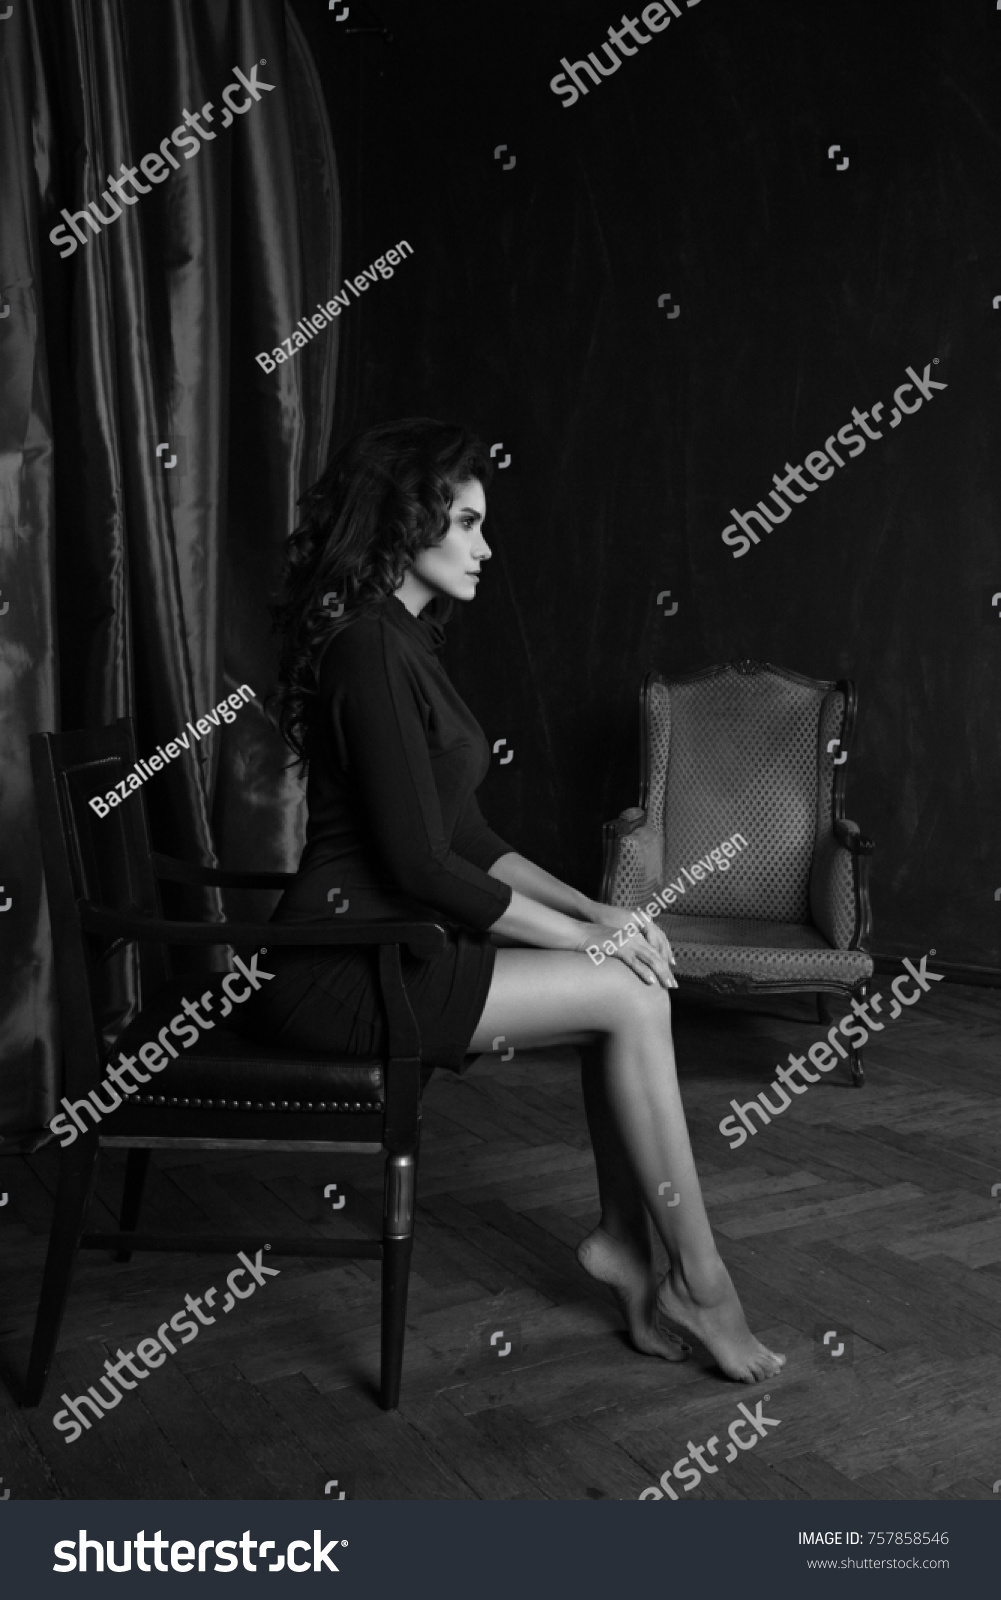 Elegant woman portrait studio shot black and white bw portrait of attractive brunette sexy girl